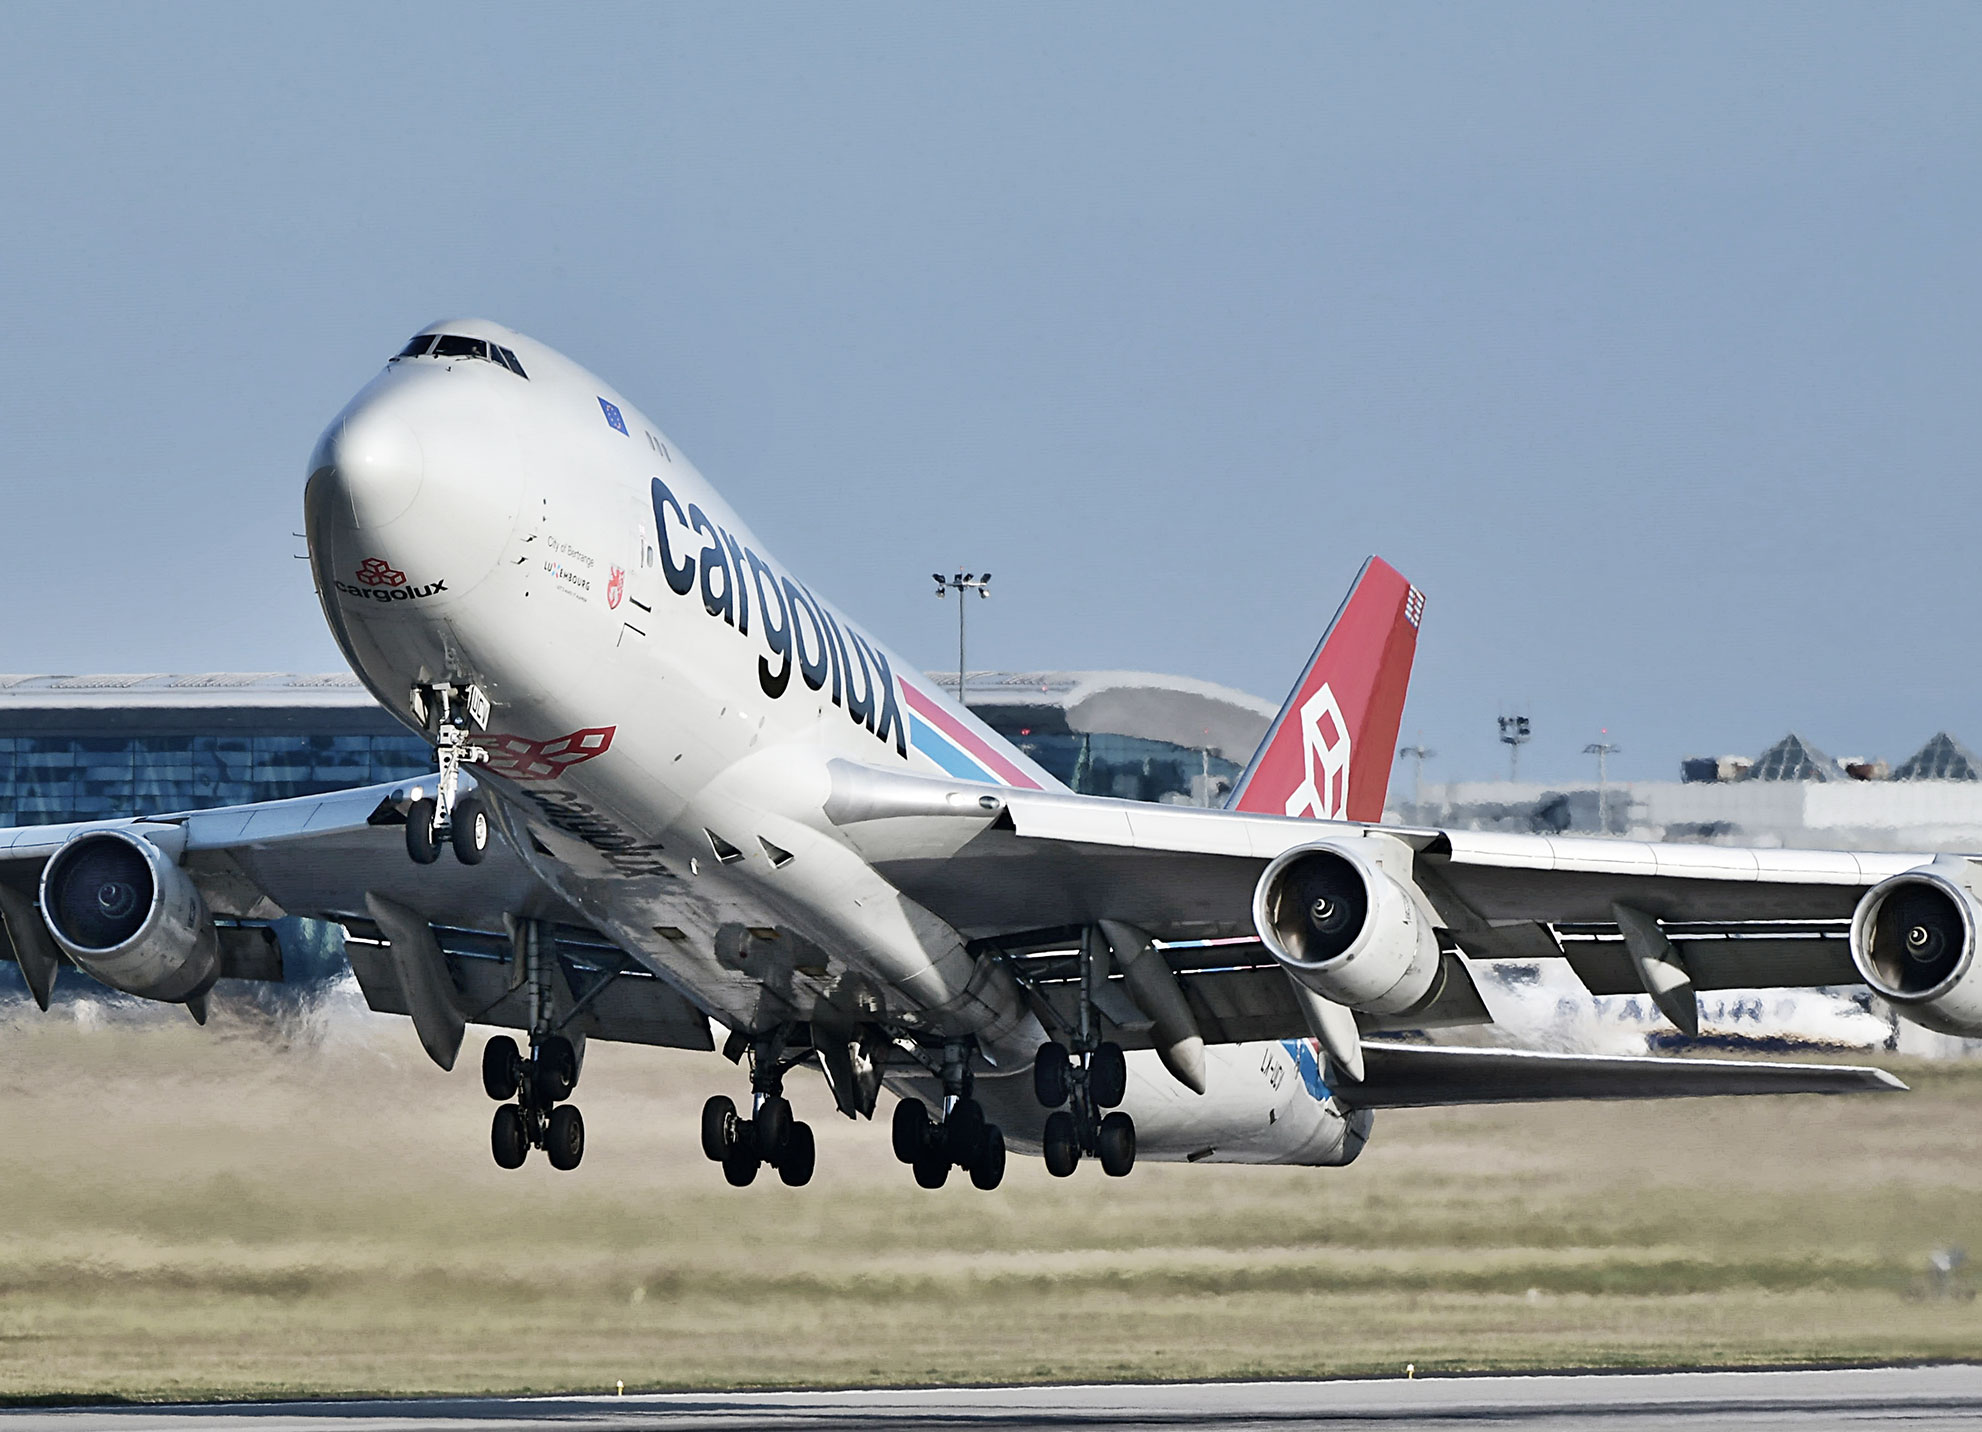 Boeing 747 freighter taking-off